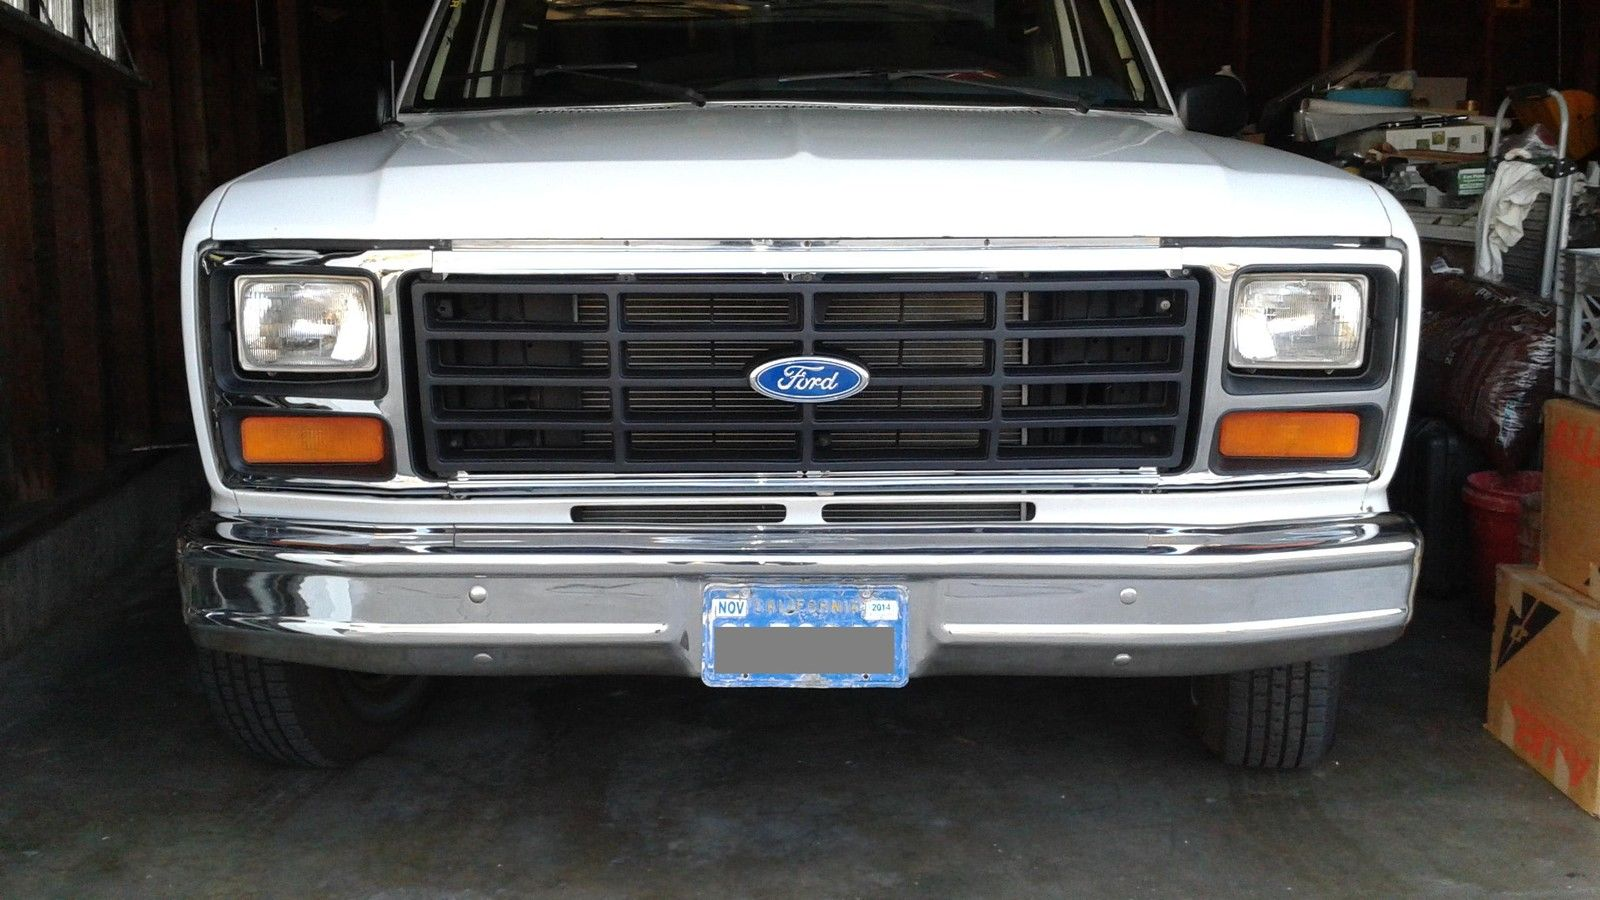 1985 Ford F150 Single Cab Short Bed For Sale In Los Angeles  California  United States For Sale